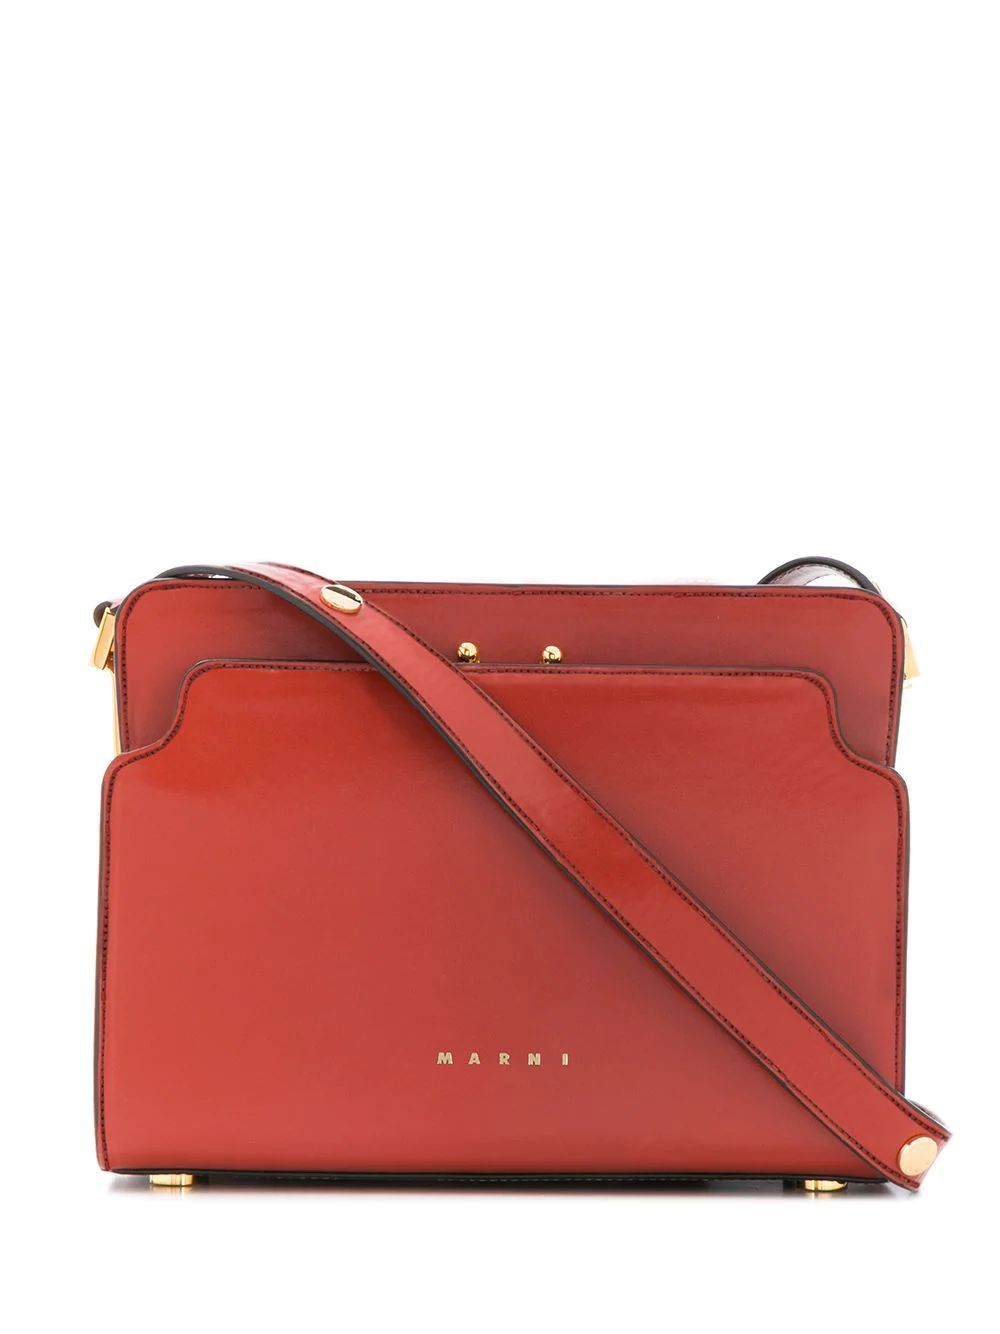 MARNI WOMEN'S SBMP0024Y0P2991Z275M RED LEATHER SHOULDER BAG